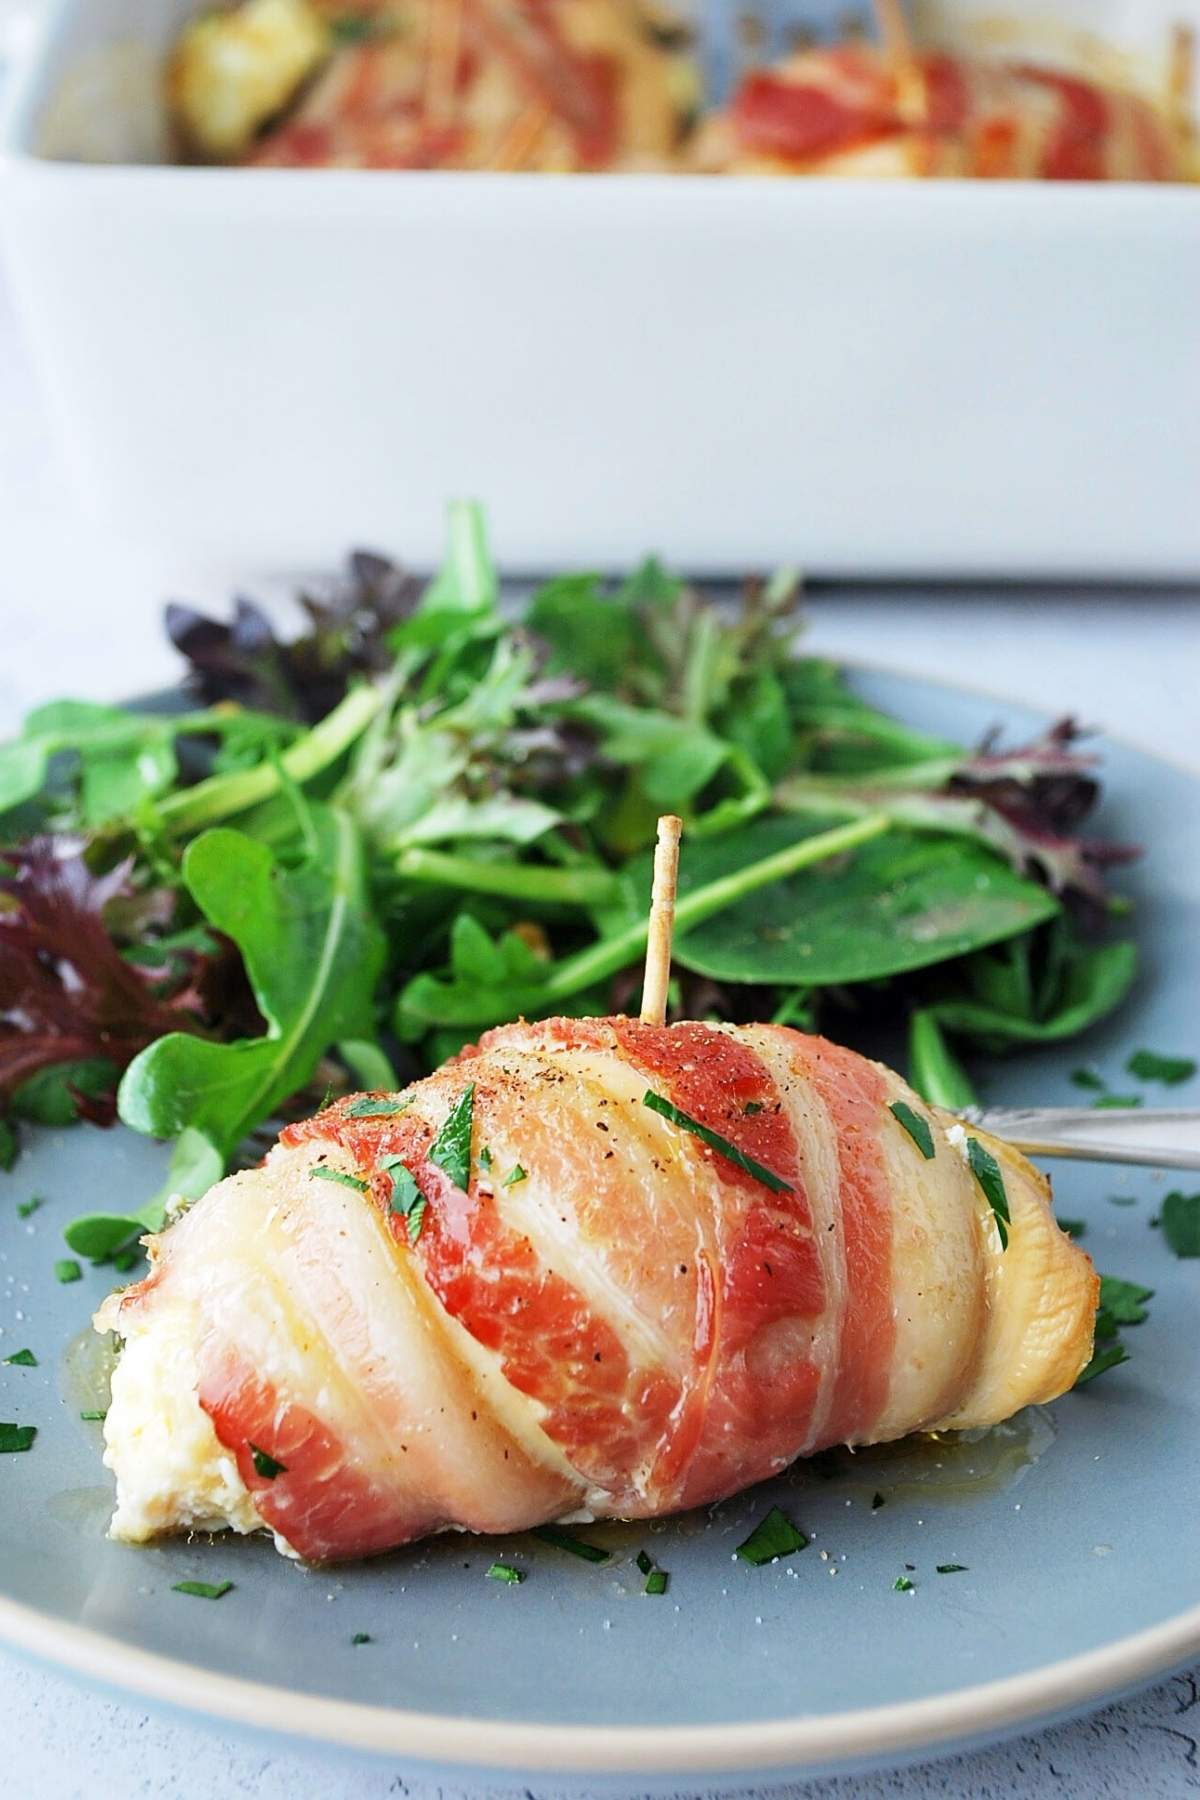 a bacon-wrapped chicken breast on a plate with a side salad and a pan of bacon-wrapped chicken breasts in the background